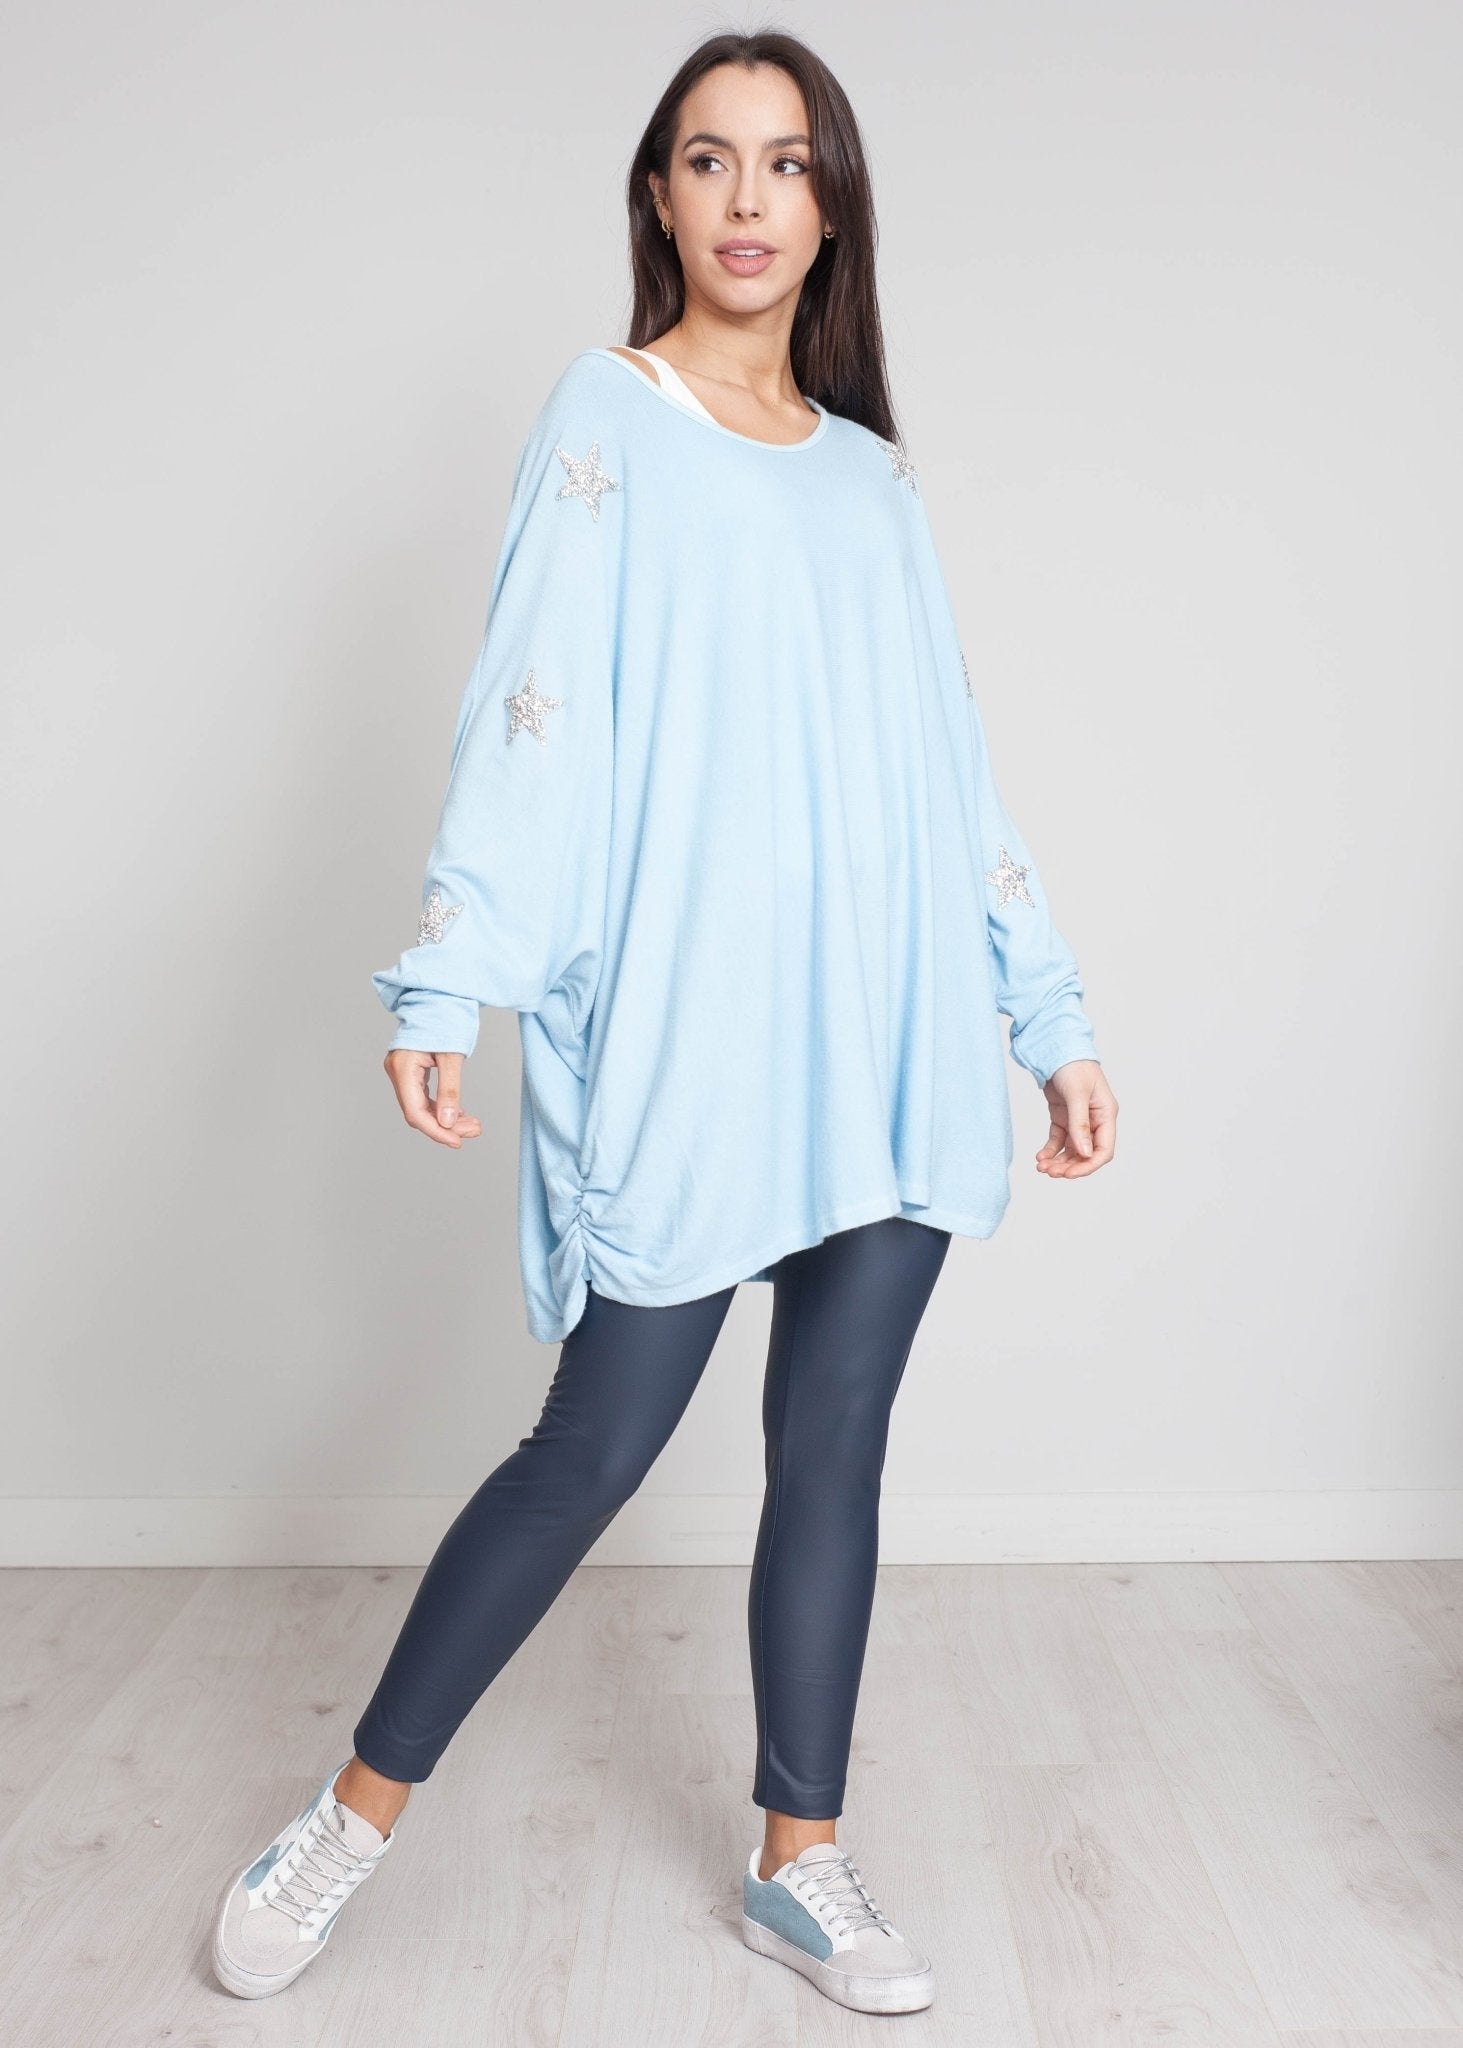 Priya Embellished Knit In Blue - The Walk in Wardrobe